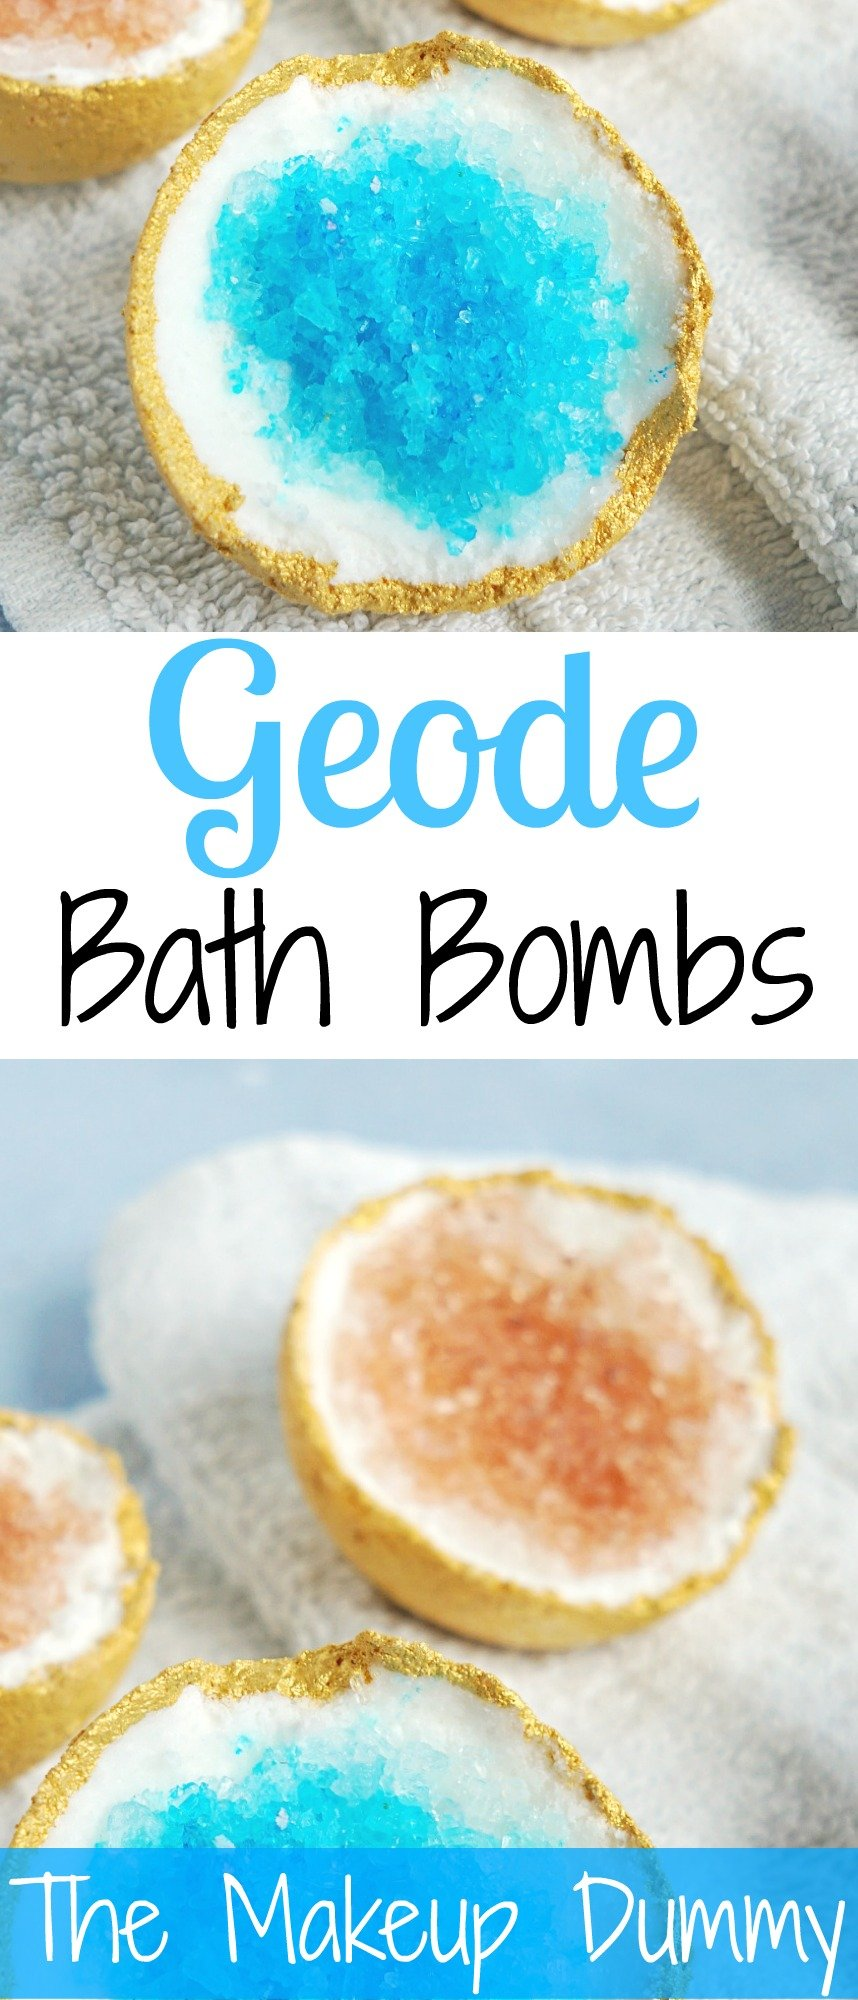 Geode Bath Bombs – THE ORIGINAL DIY RECIPE